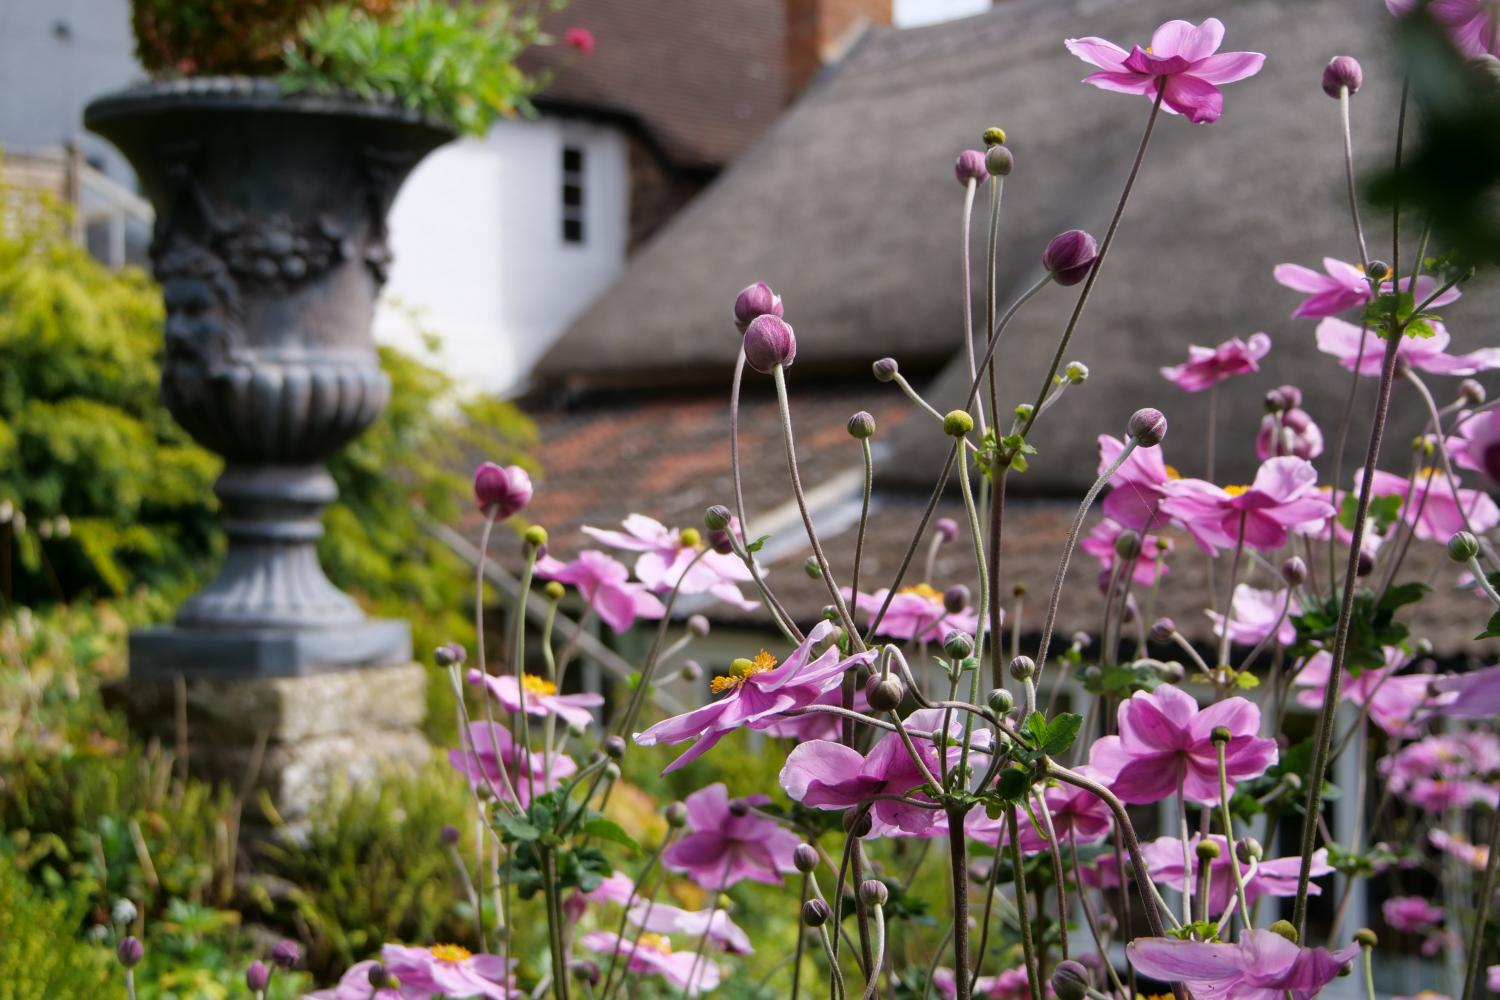 Japanese anemones in the sun